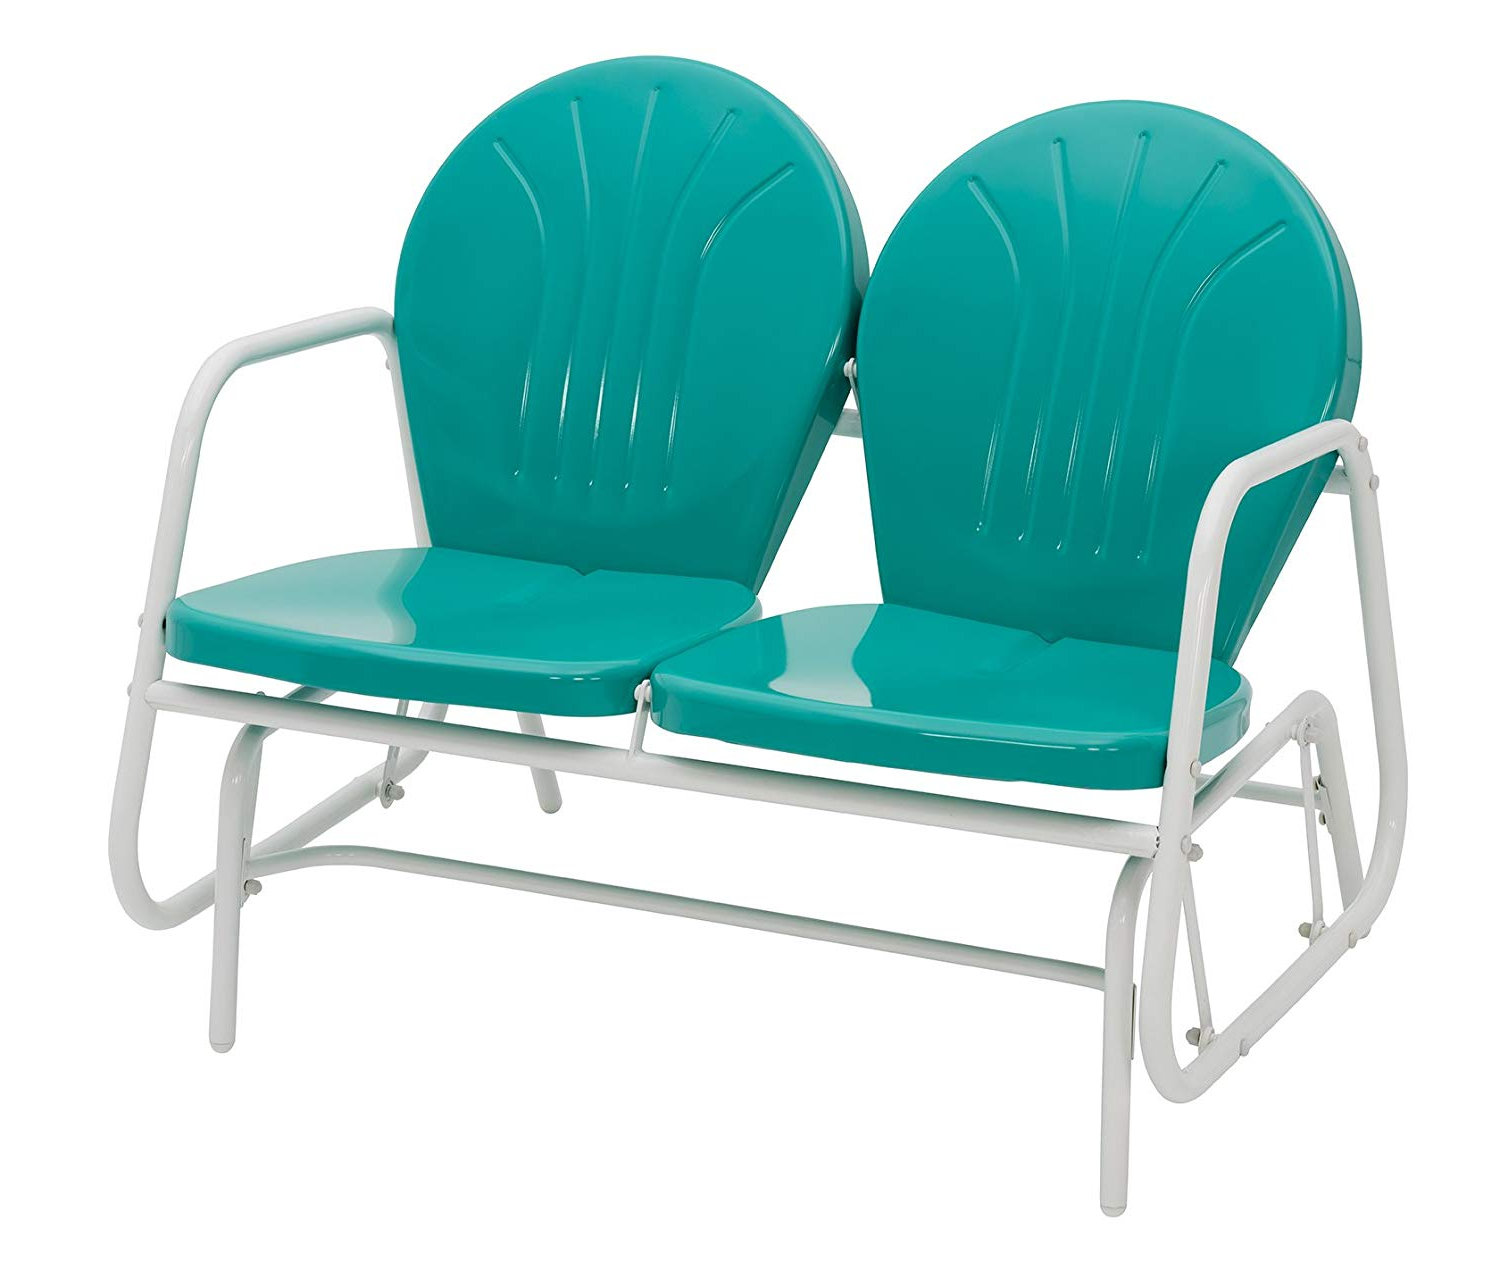 Jack Post Bh 10Em Porch Glider,turquoise Throughout 2019 Metal Retro Glider Benches (View 11 of 30)